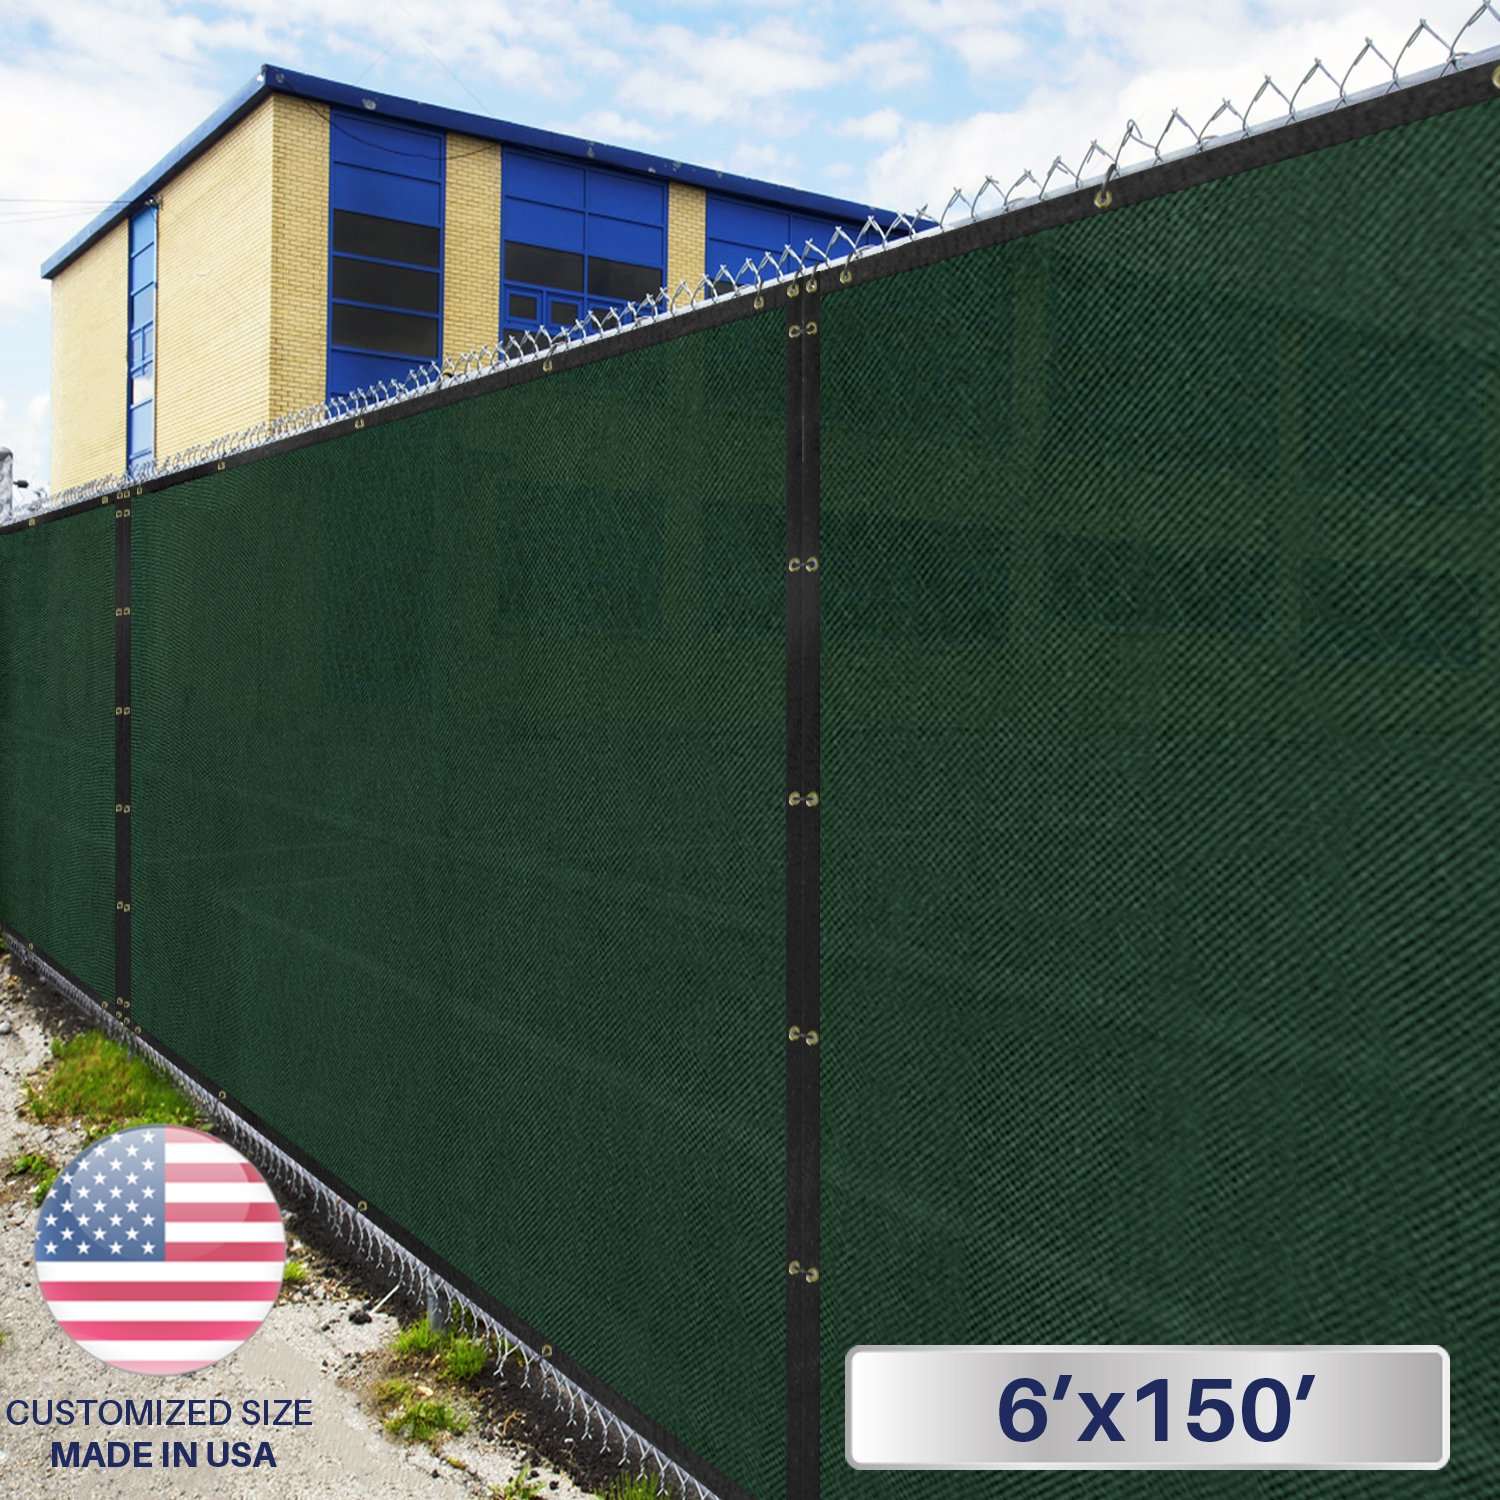 6' x 150' Privacy Fence Screen in Green with Brass Grommet 85% Blockage Windscreen Outdoor Mesh Fencing Cover Netting Fabric - Custom Size Available by Windscreen4less